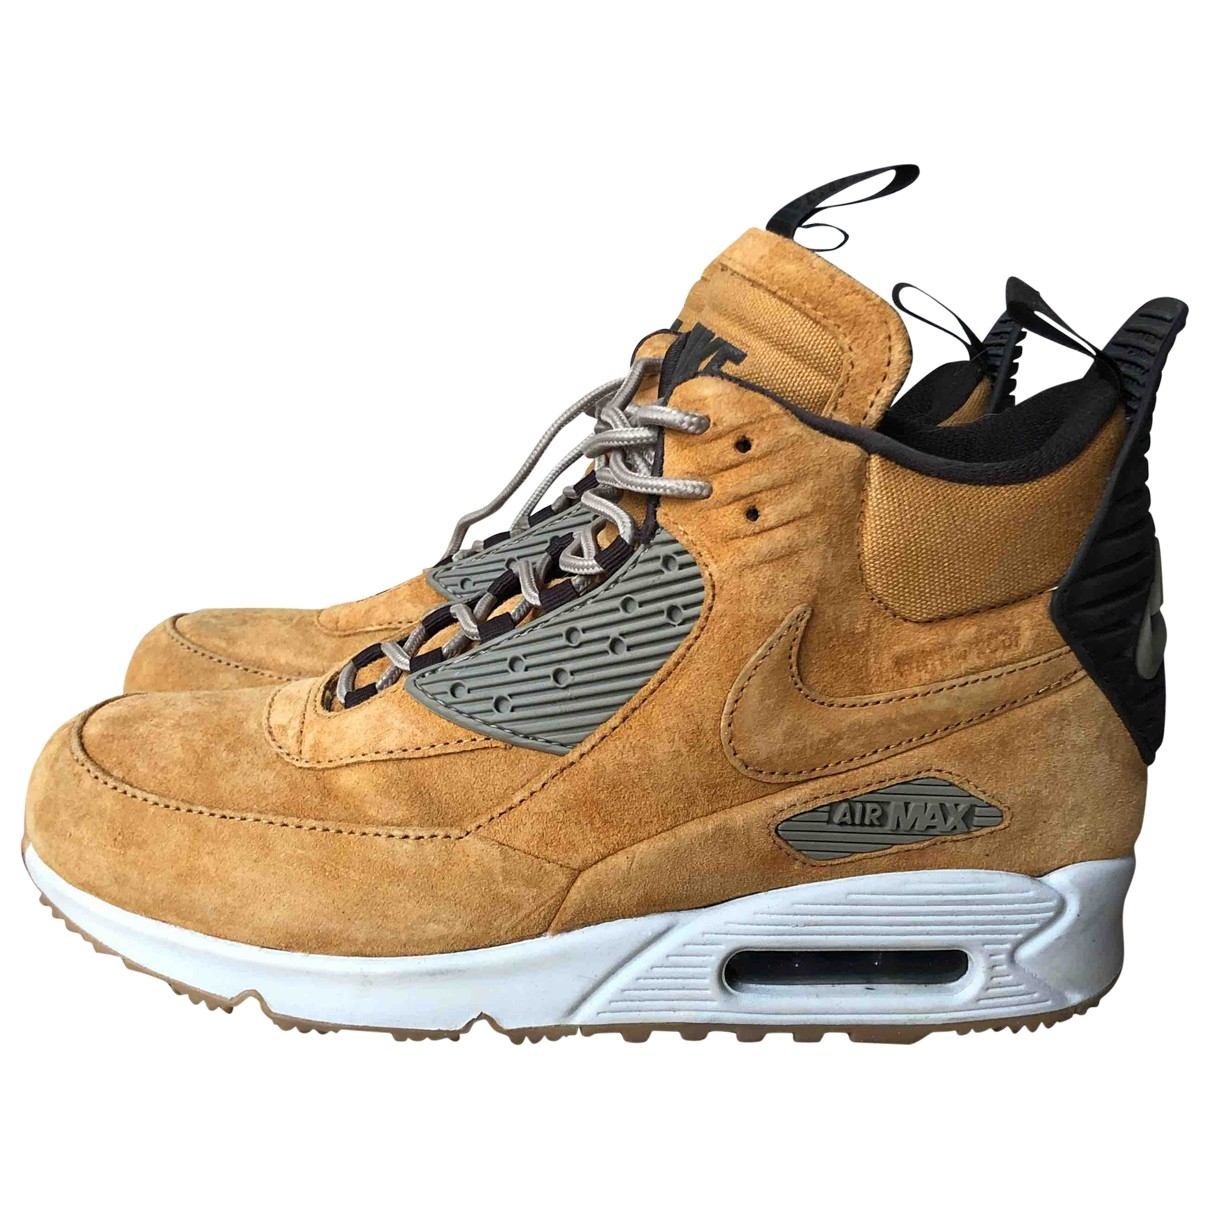 Nike Air Max 90 Camel Leather Trainers for Women 40.5 EU